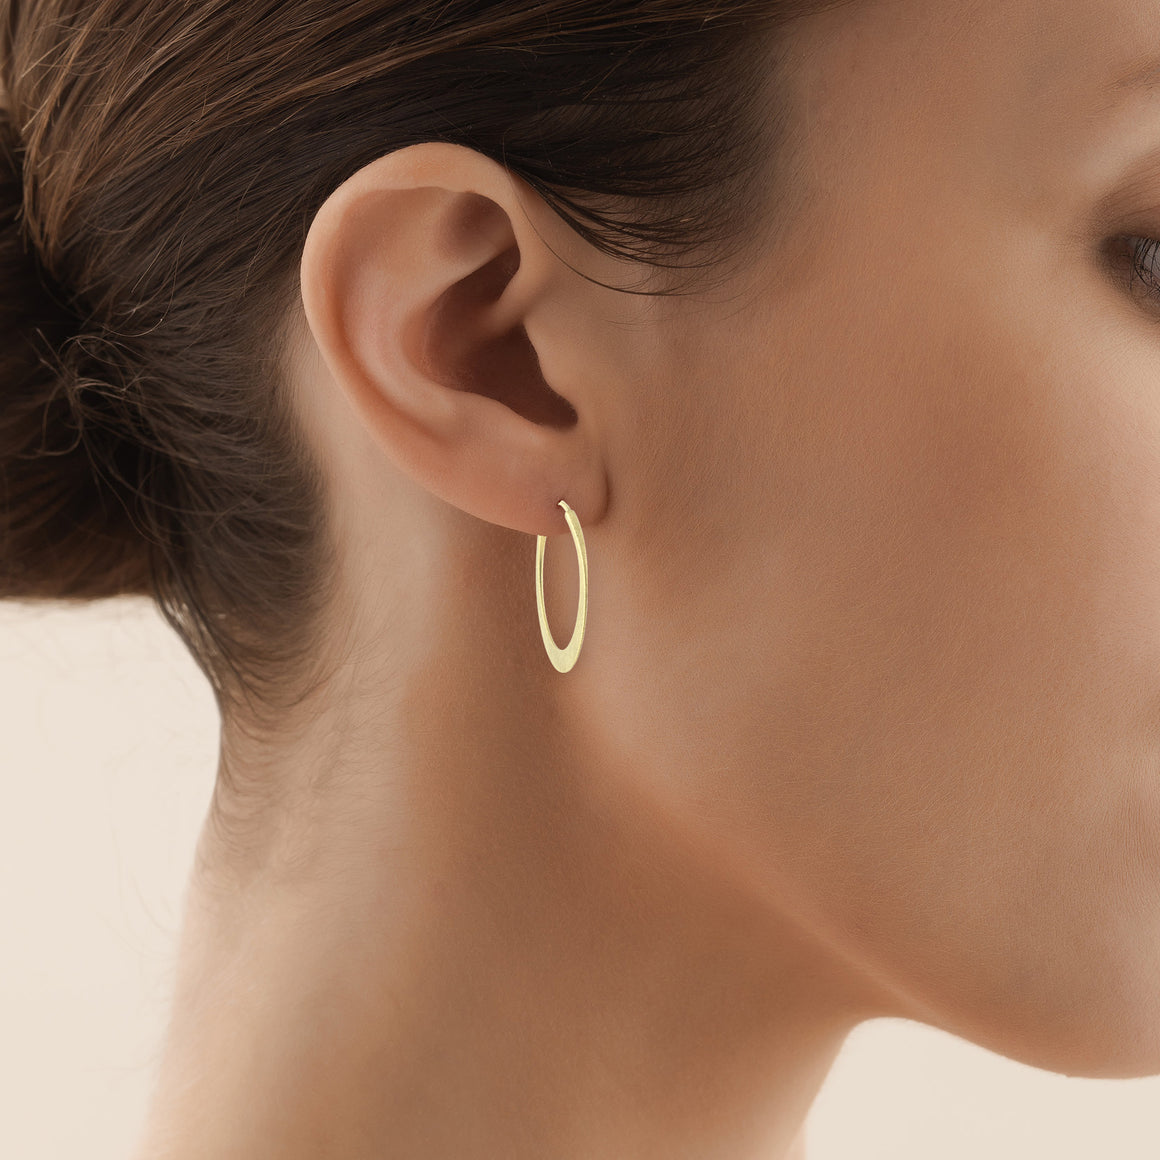 Endless Hoop Earrings in Matte Yellow Gold - 1 inch